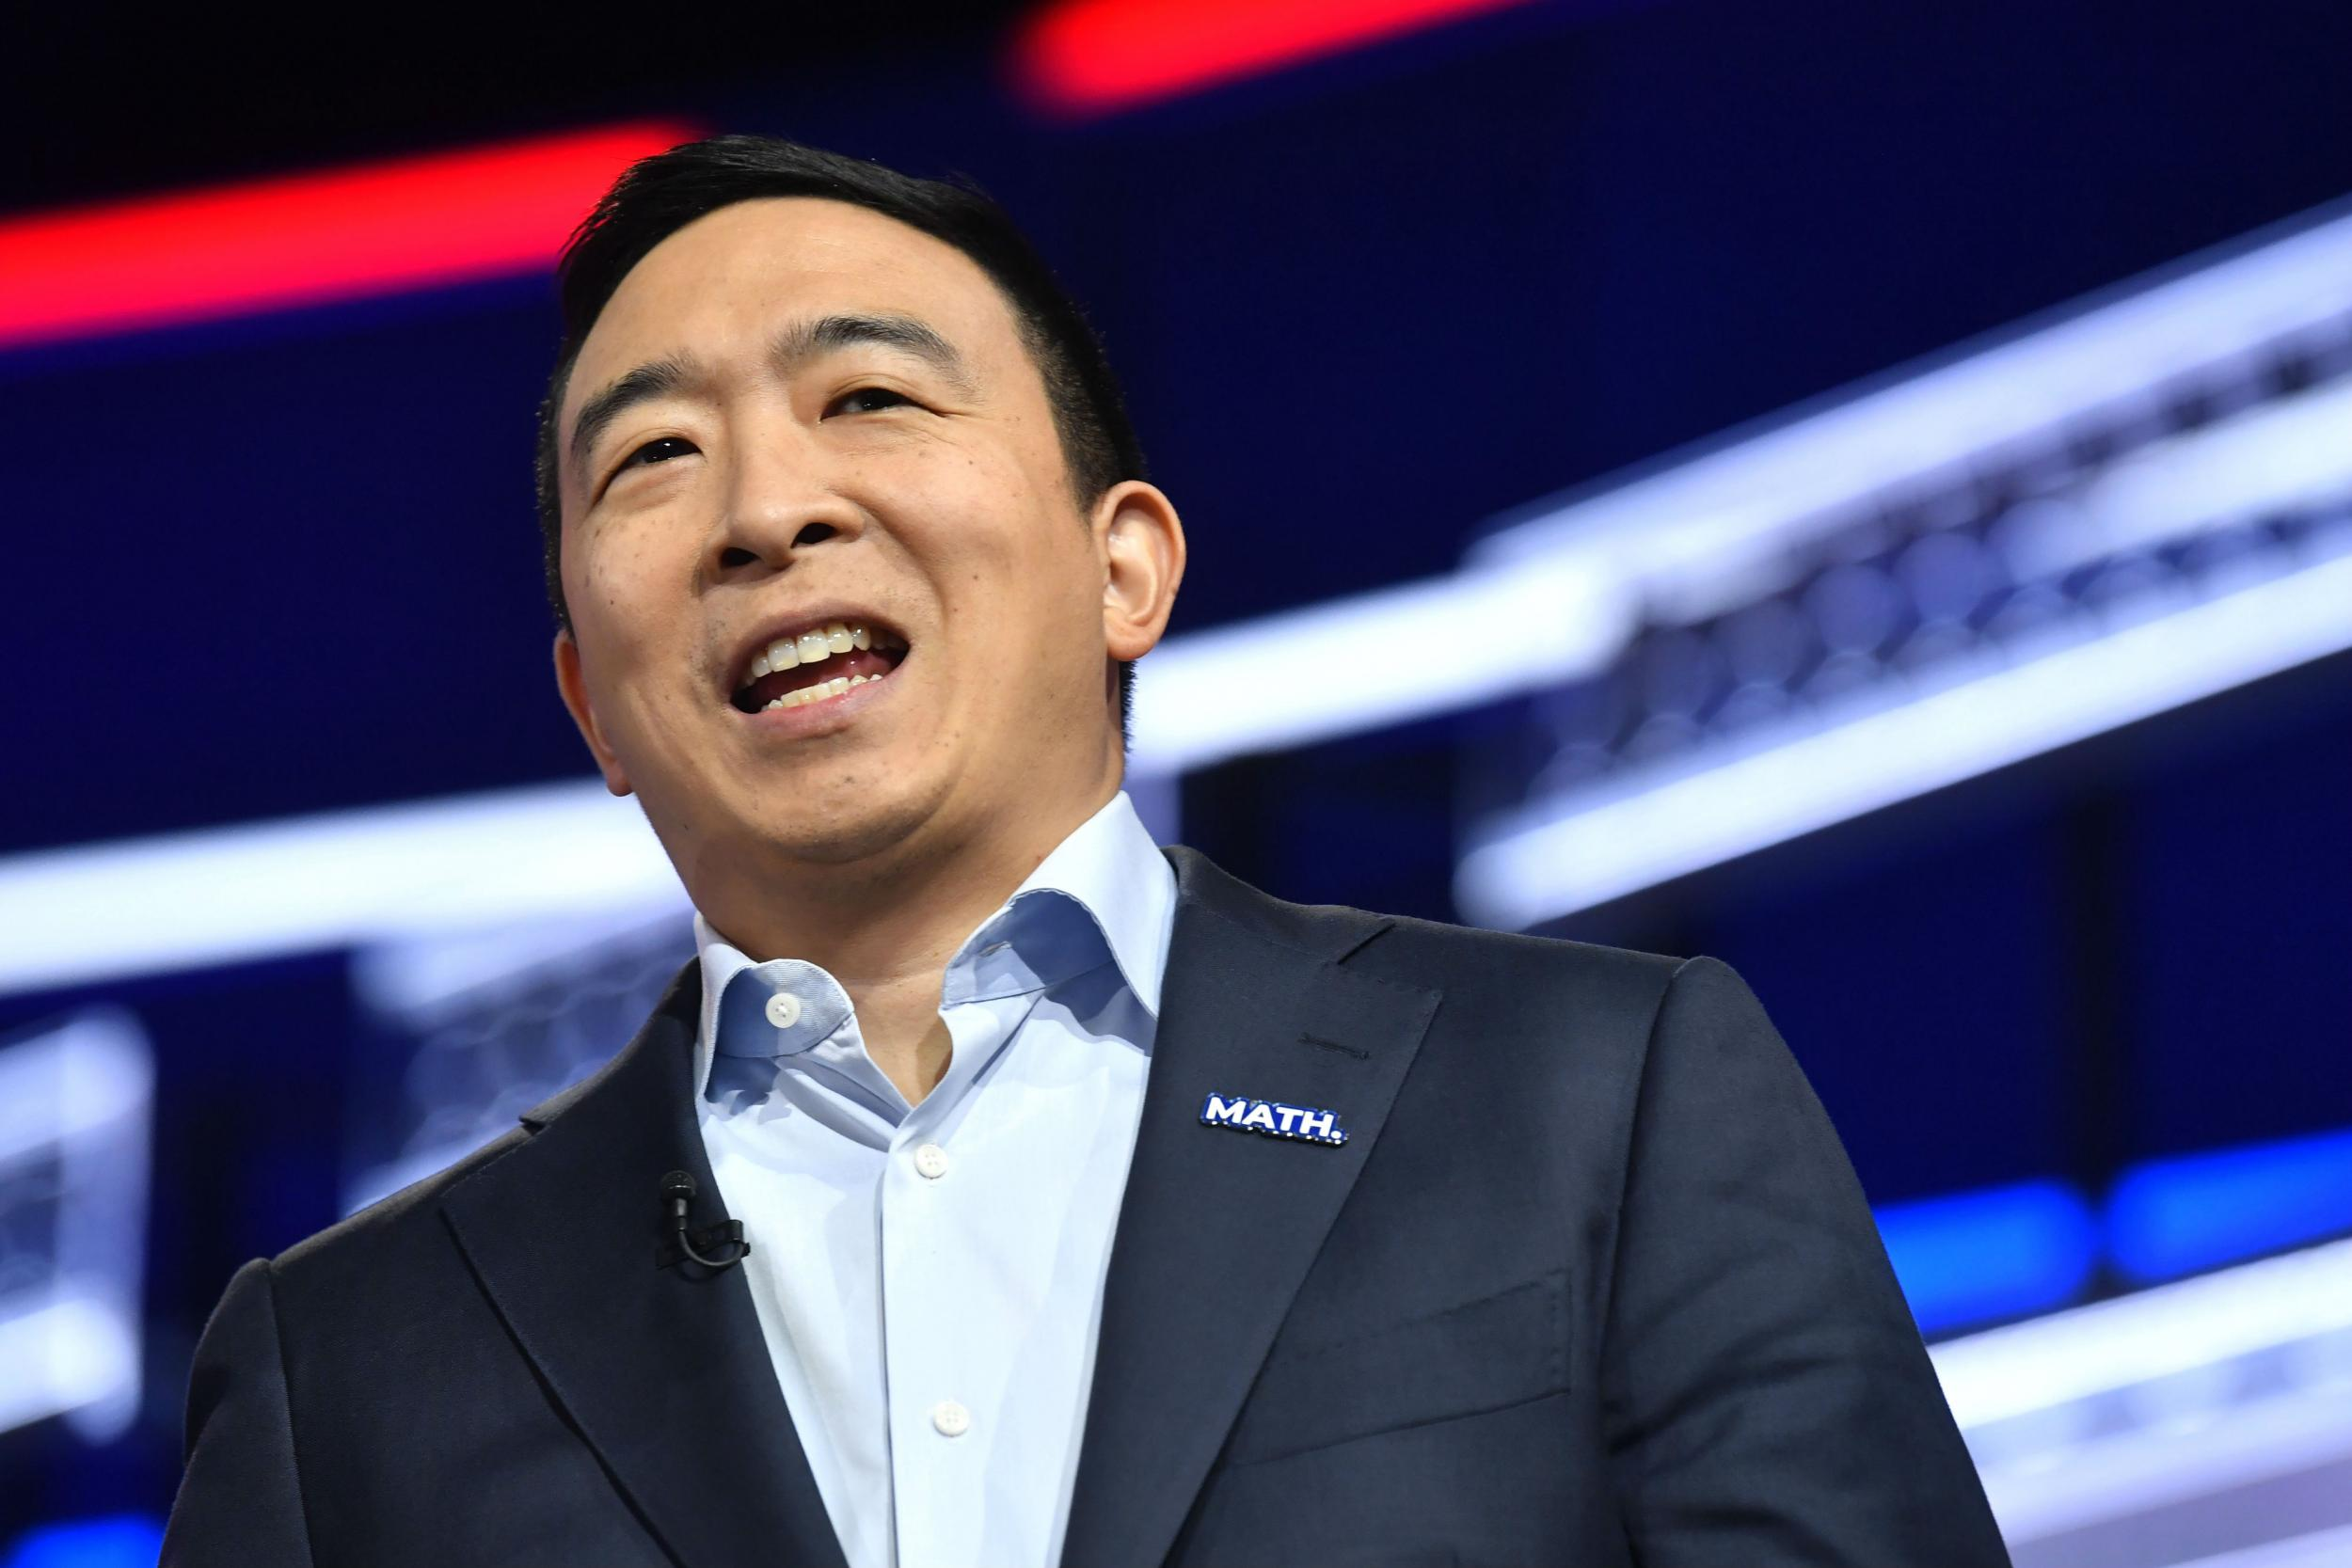 Democratic debate: Andrew Yang 'ignored' for more than 30 minutes before being asked a question